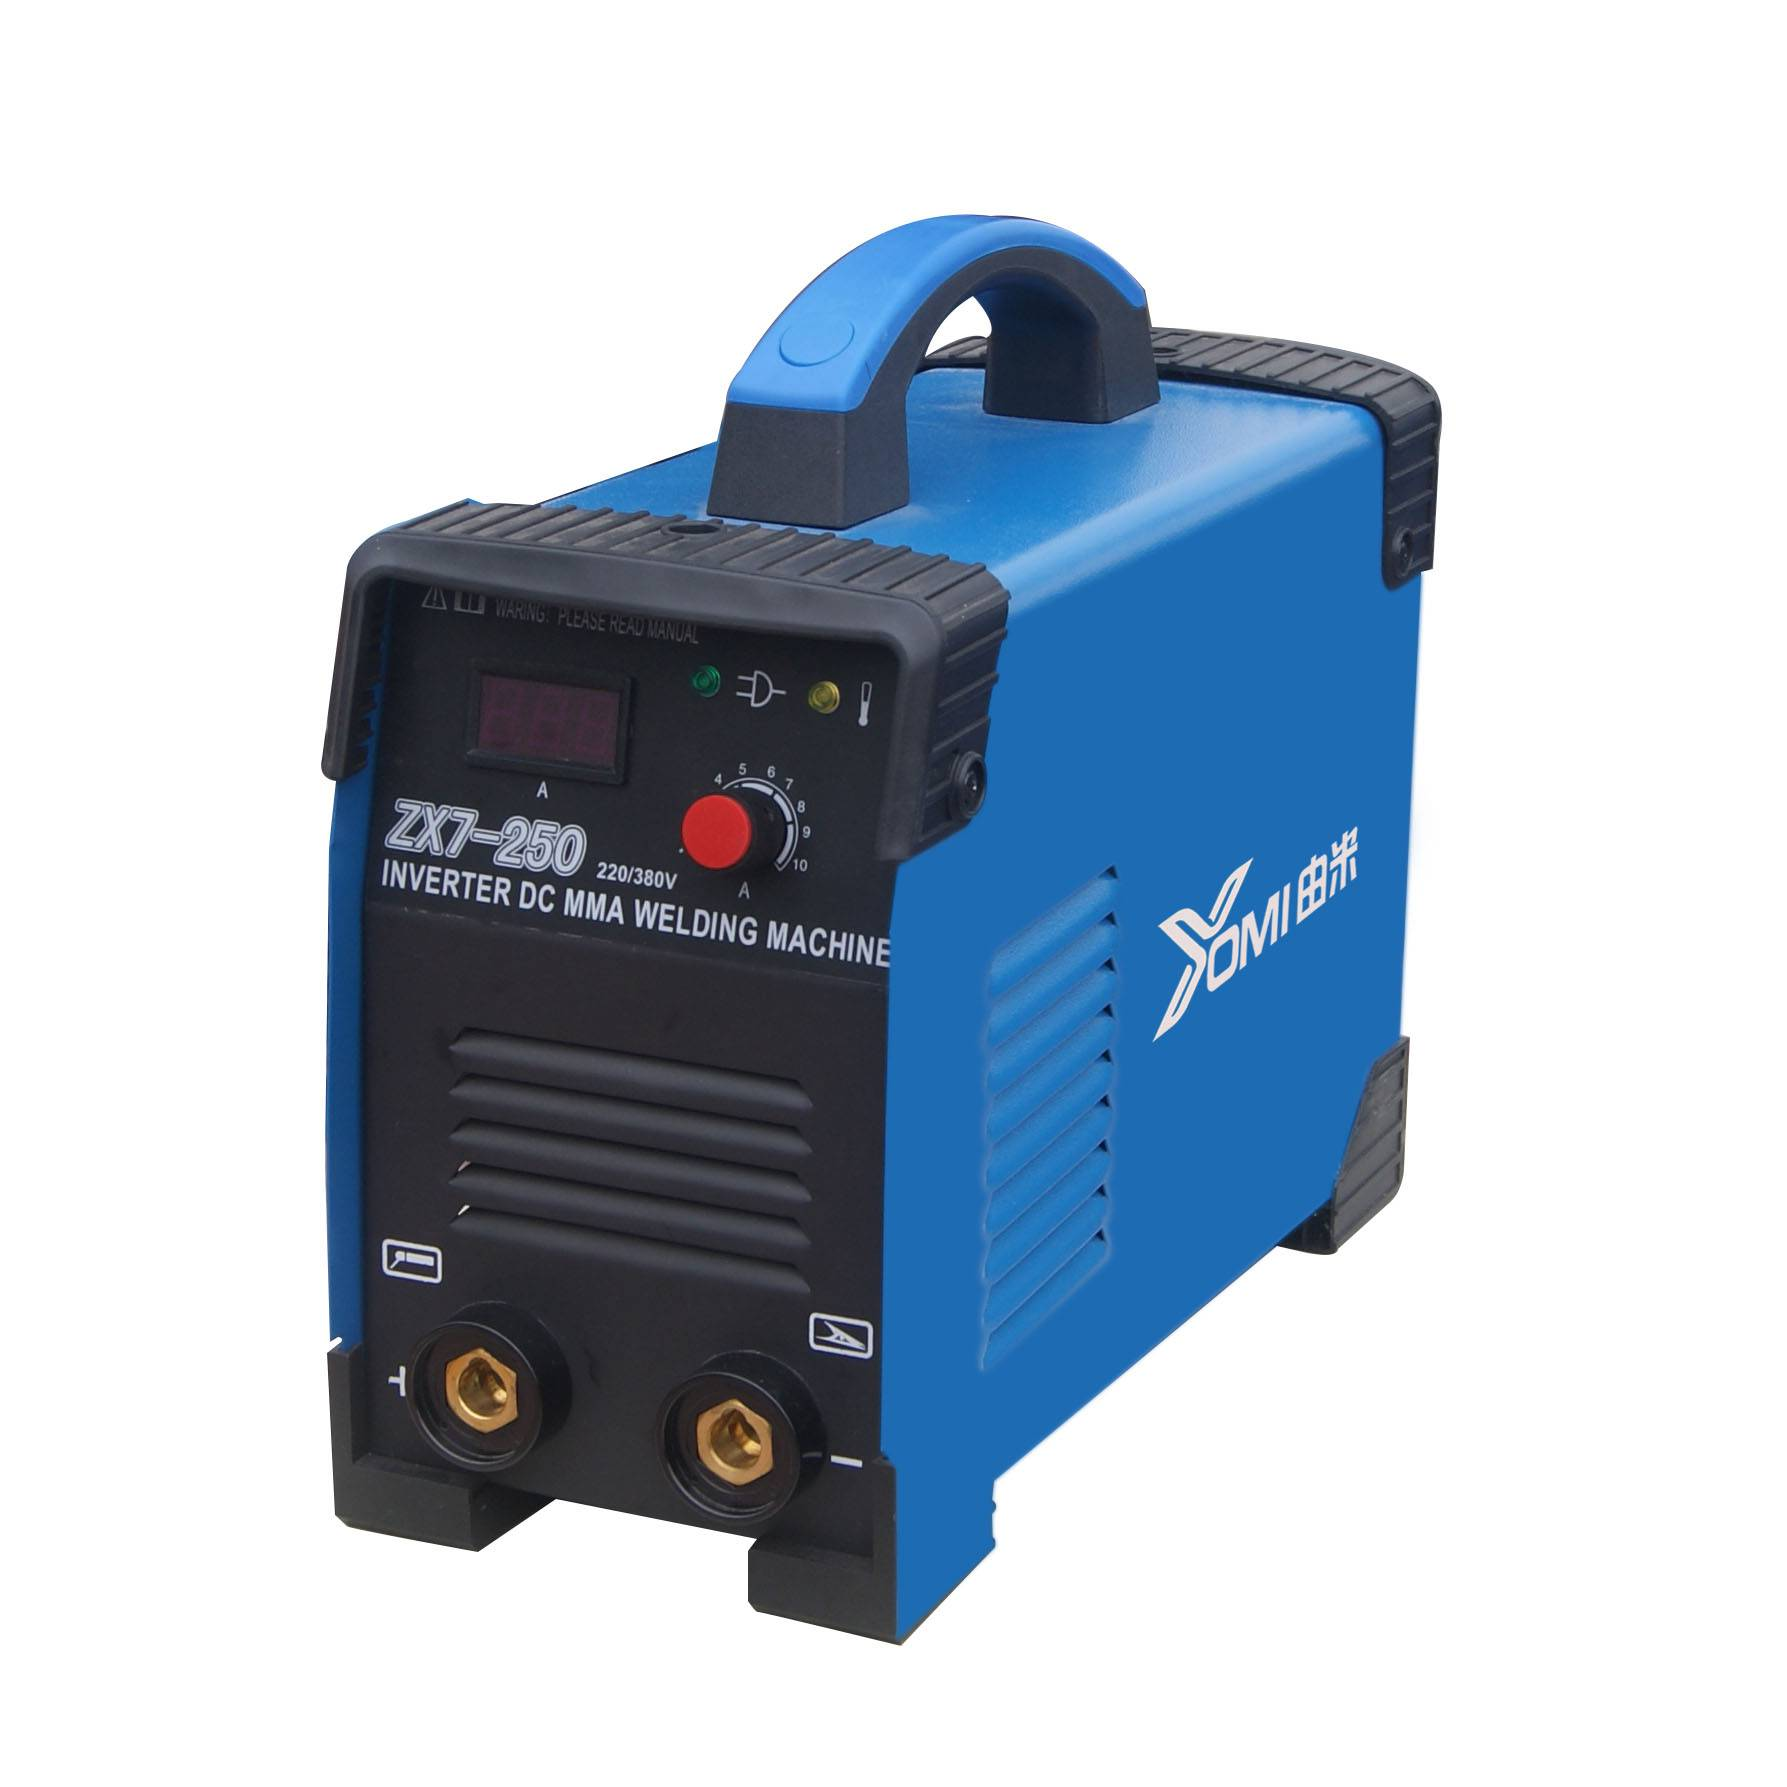 Top Quality Welding Machine For Sale In Kuwait -